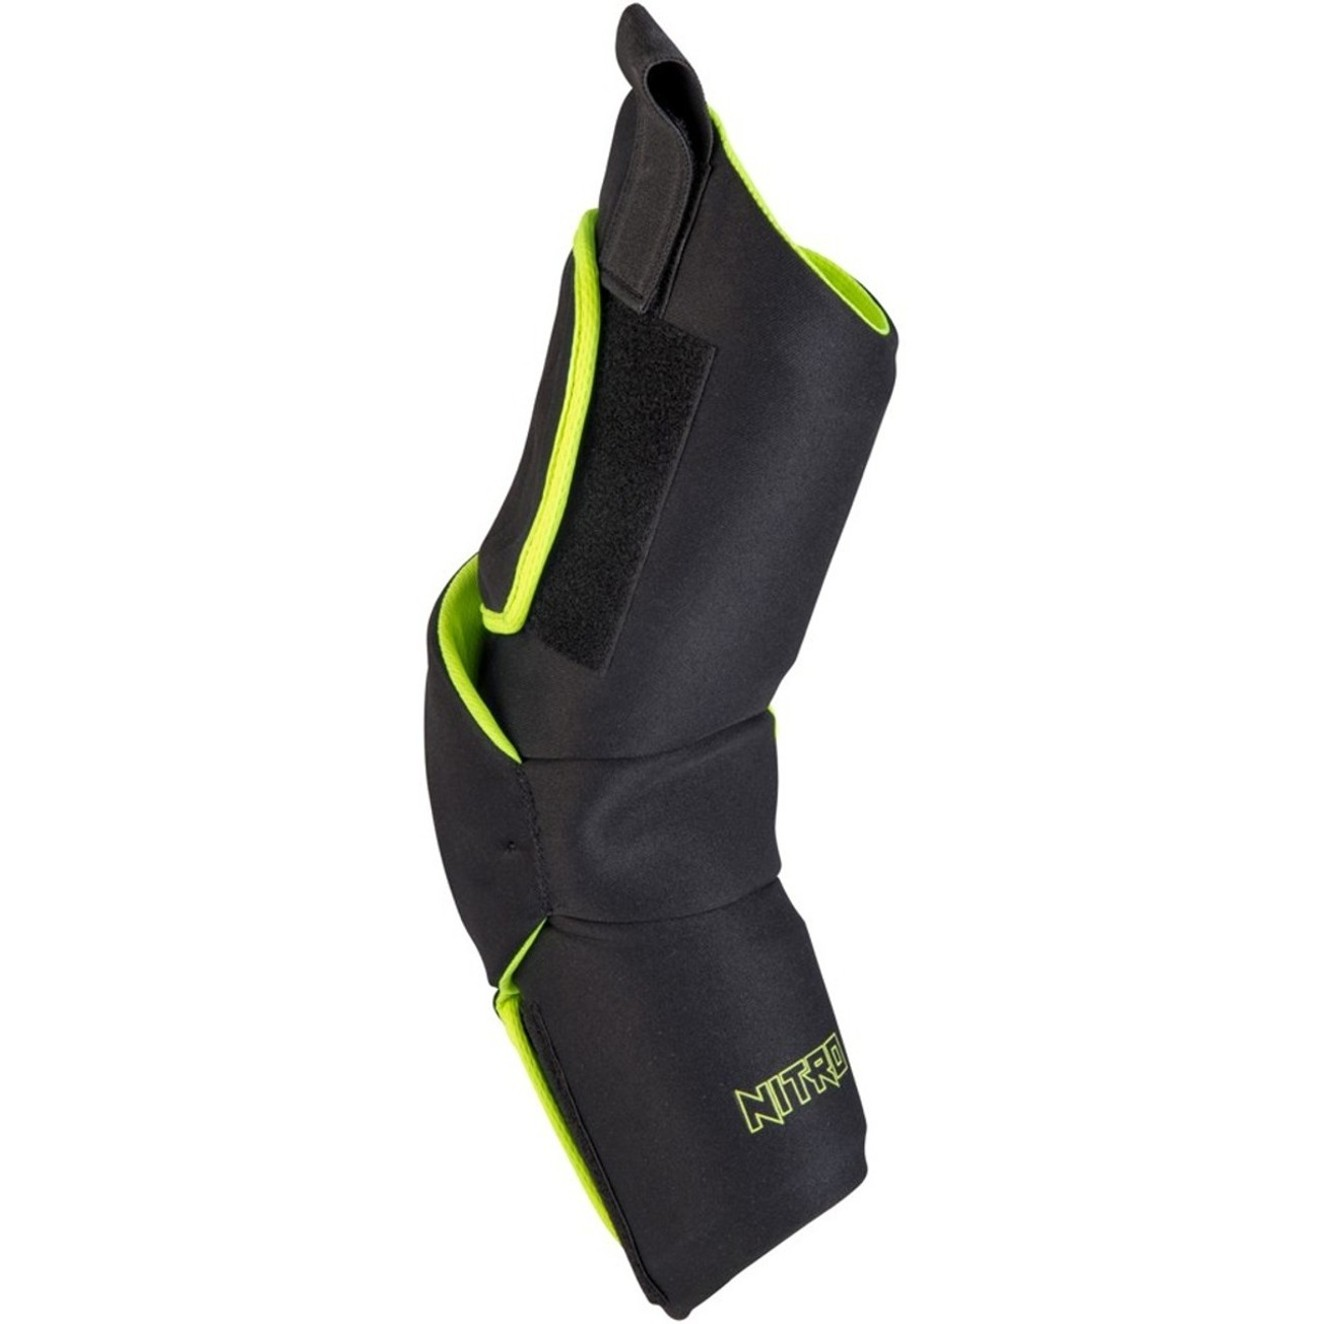 Grays ARM GUARDS - velikost M